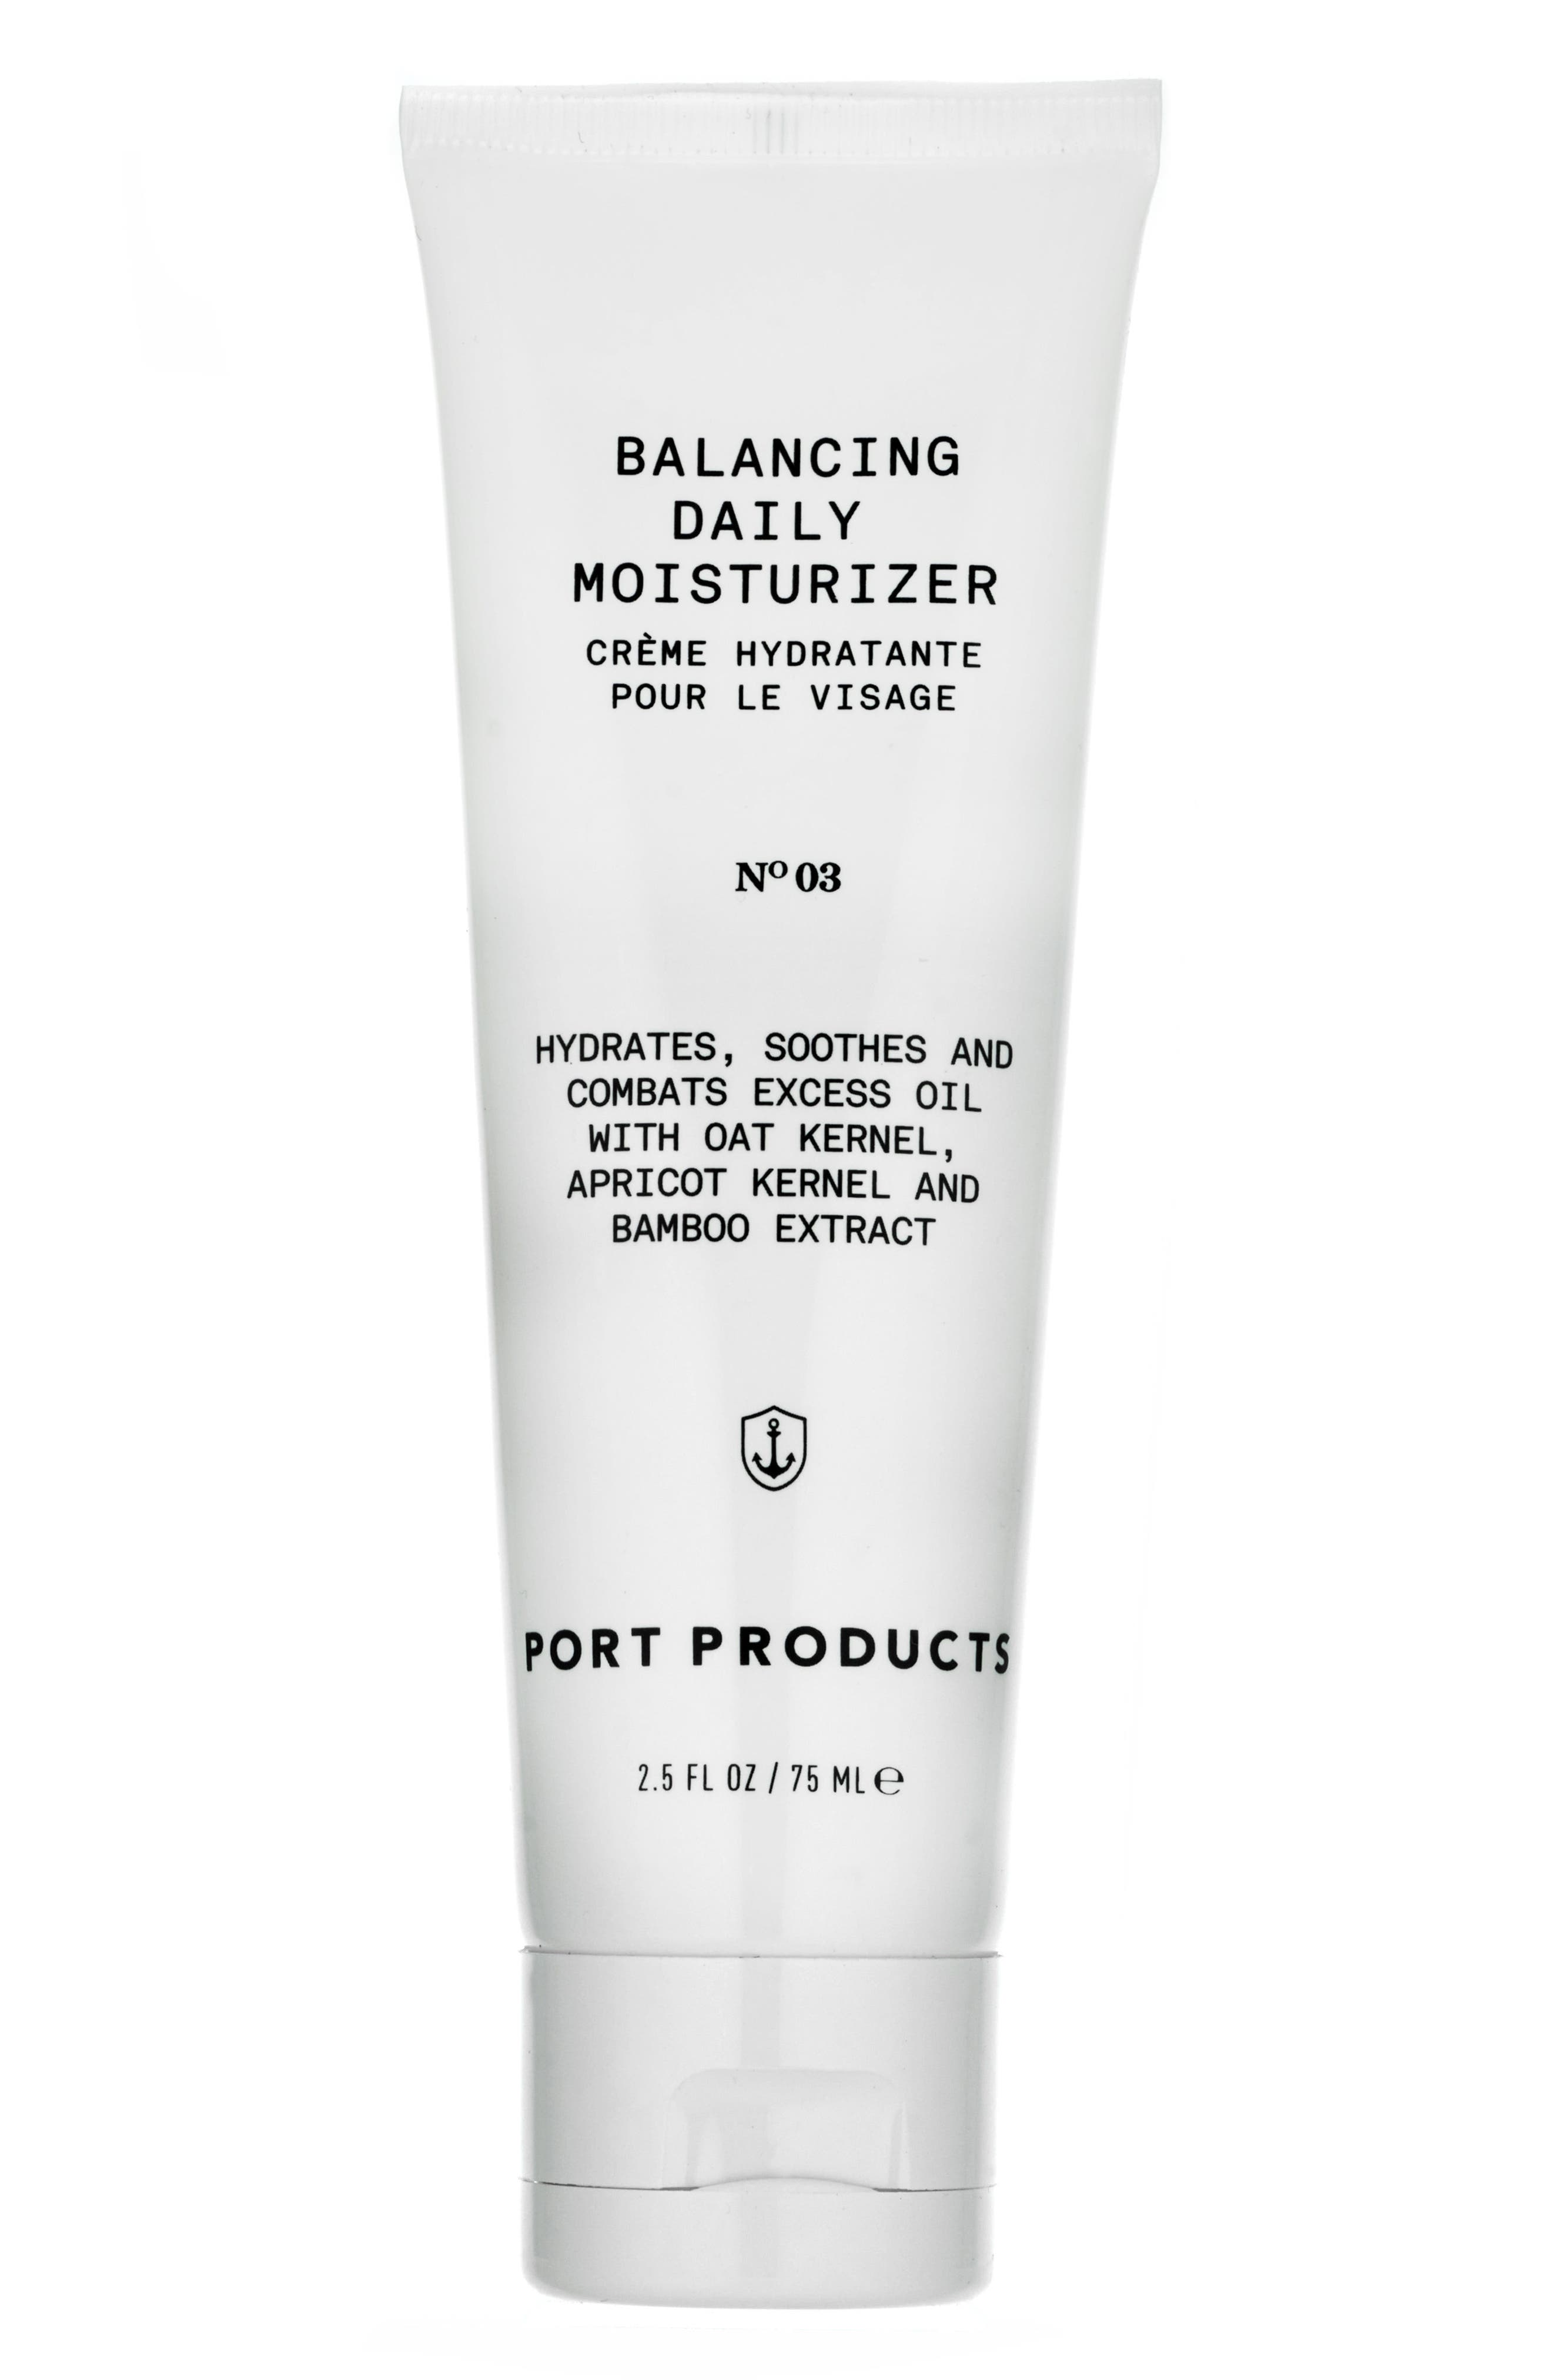 Balancing Daily Moisturizer,                         Main,                         color, No Color